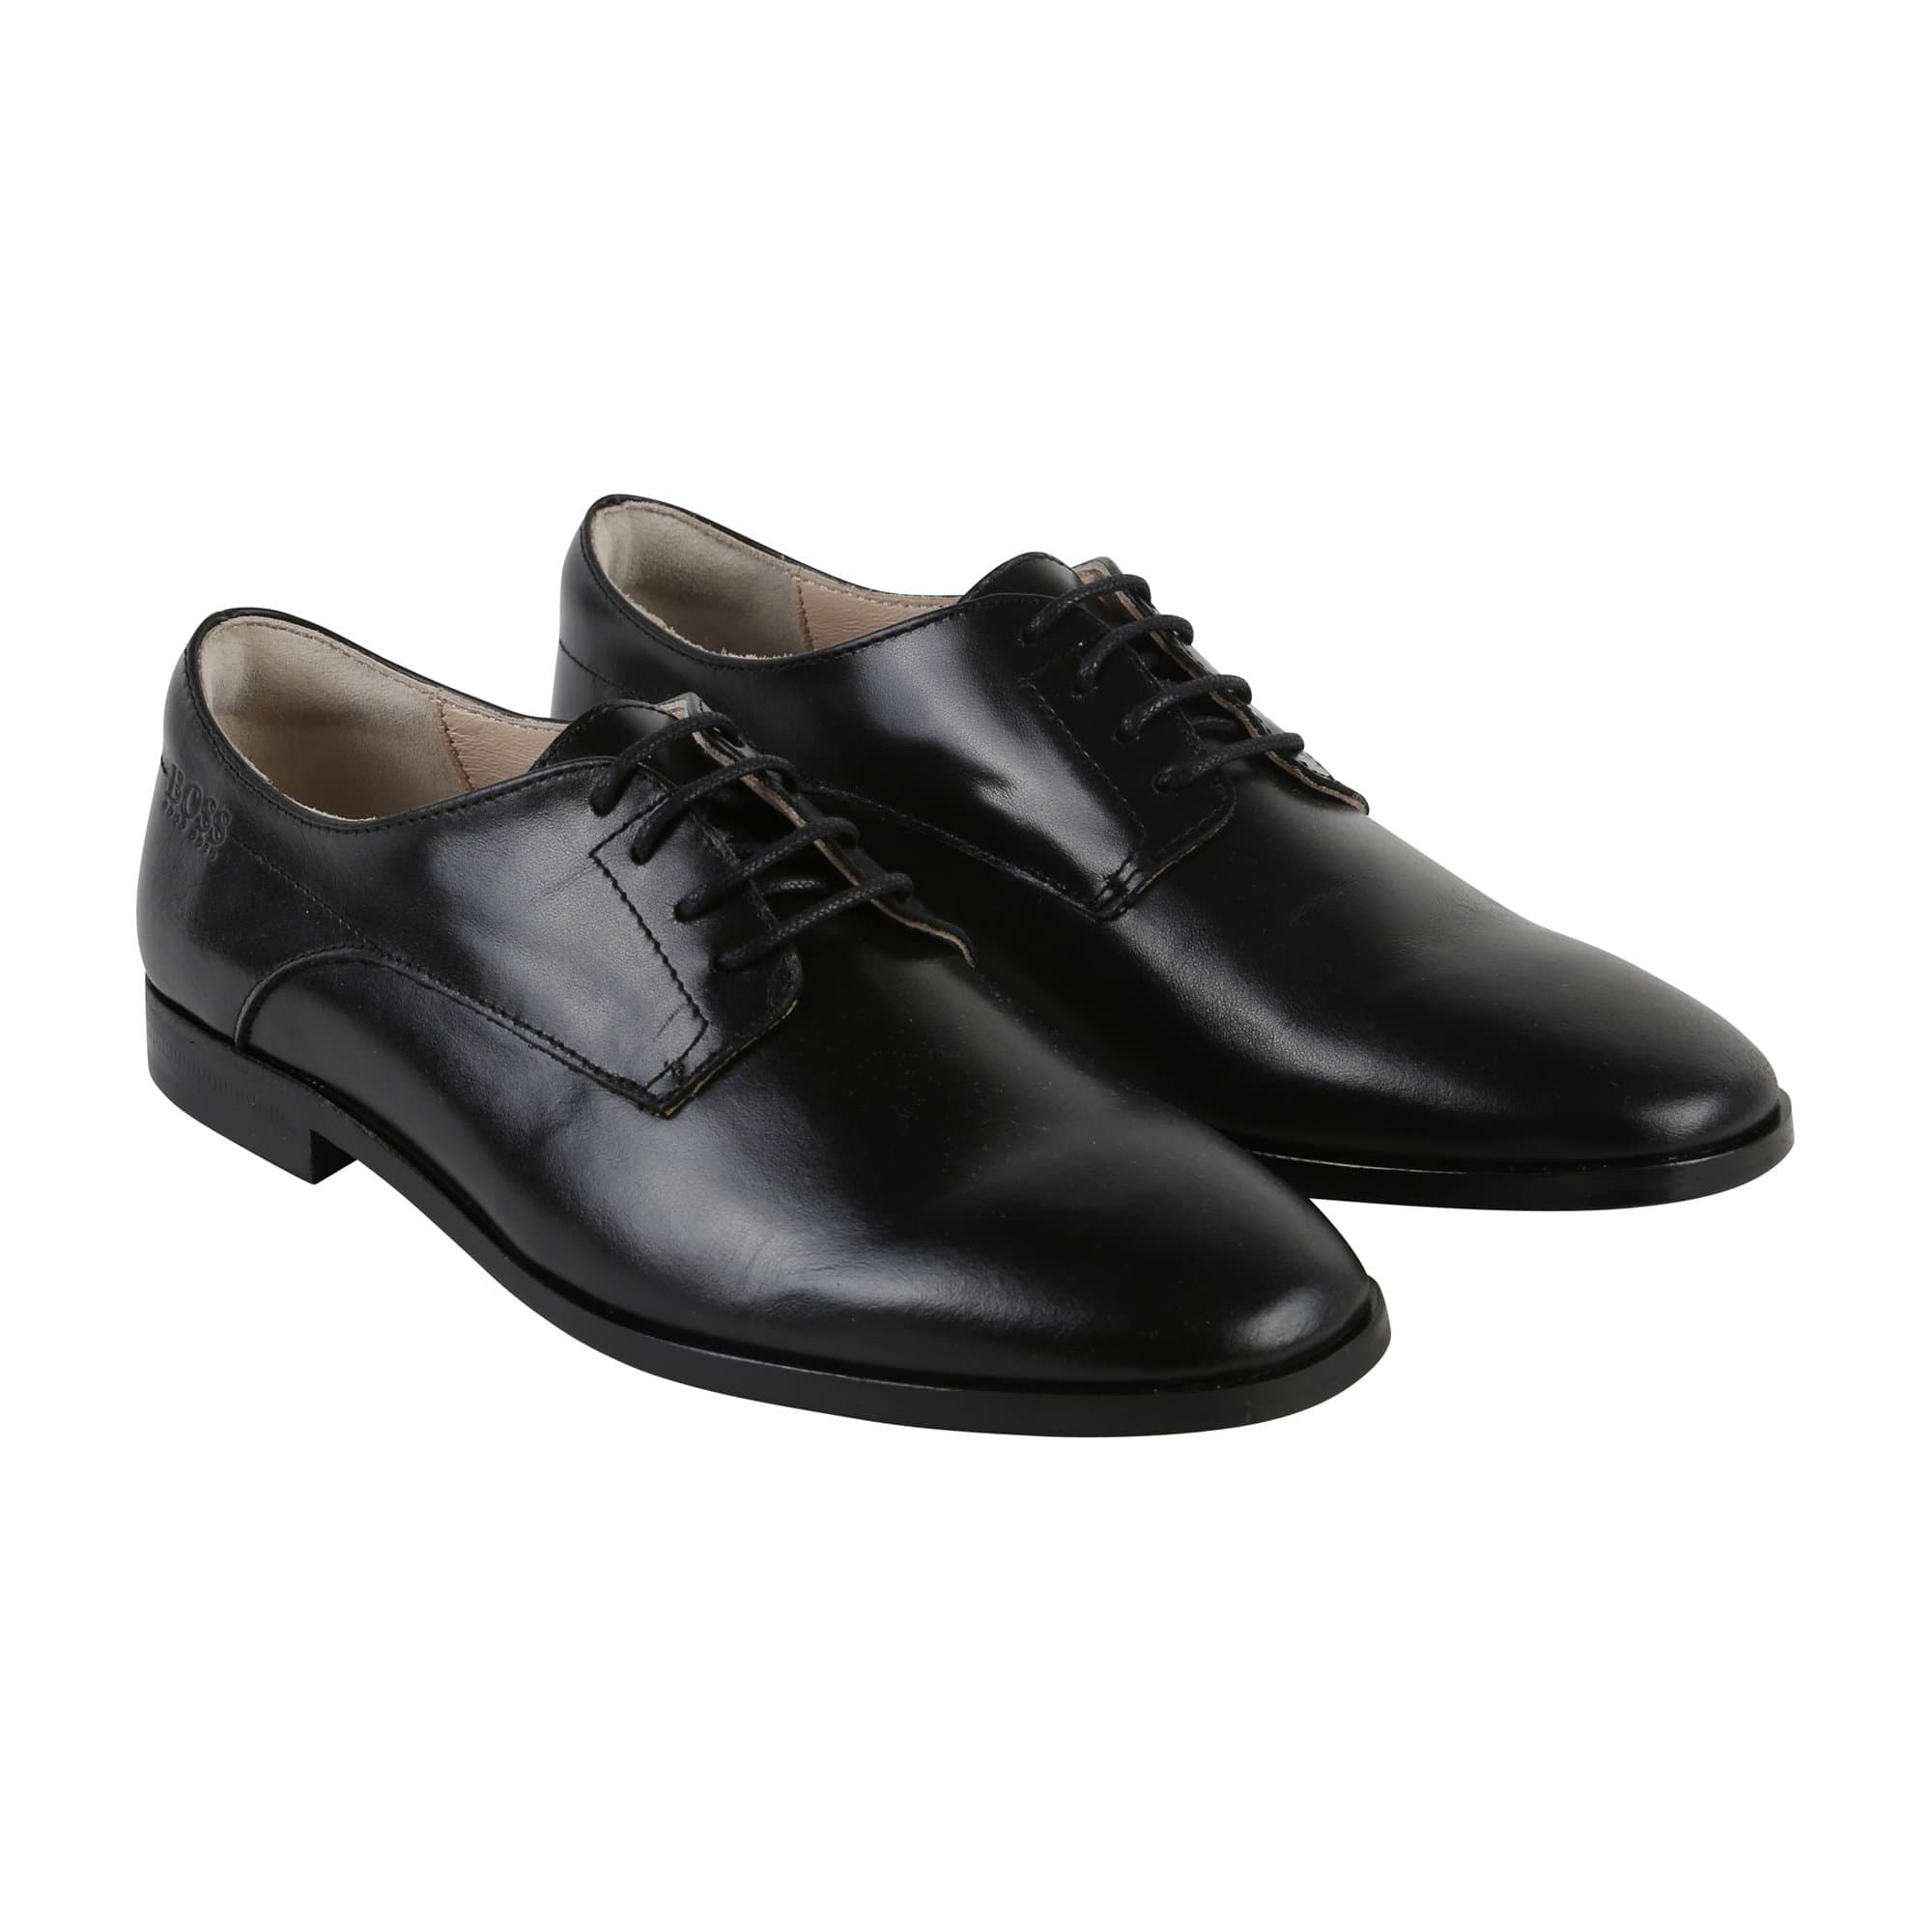 Hugo Boss Leather Dress Shoe